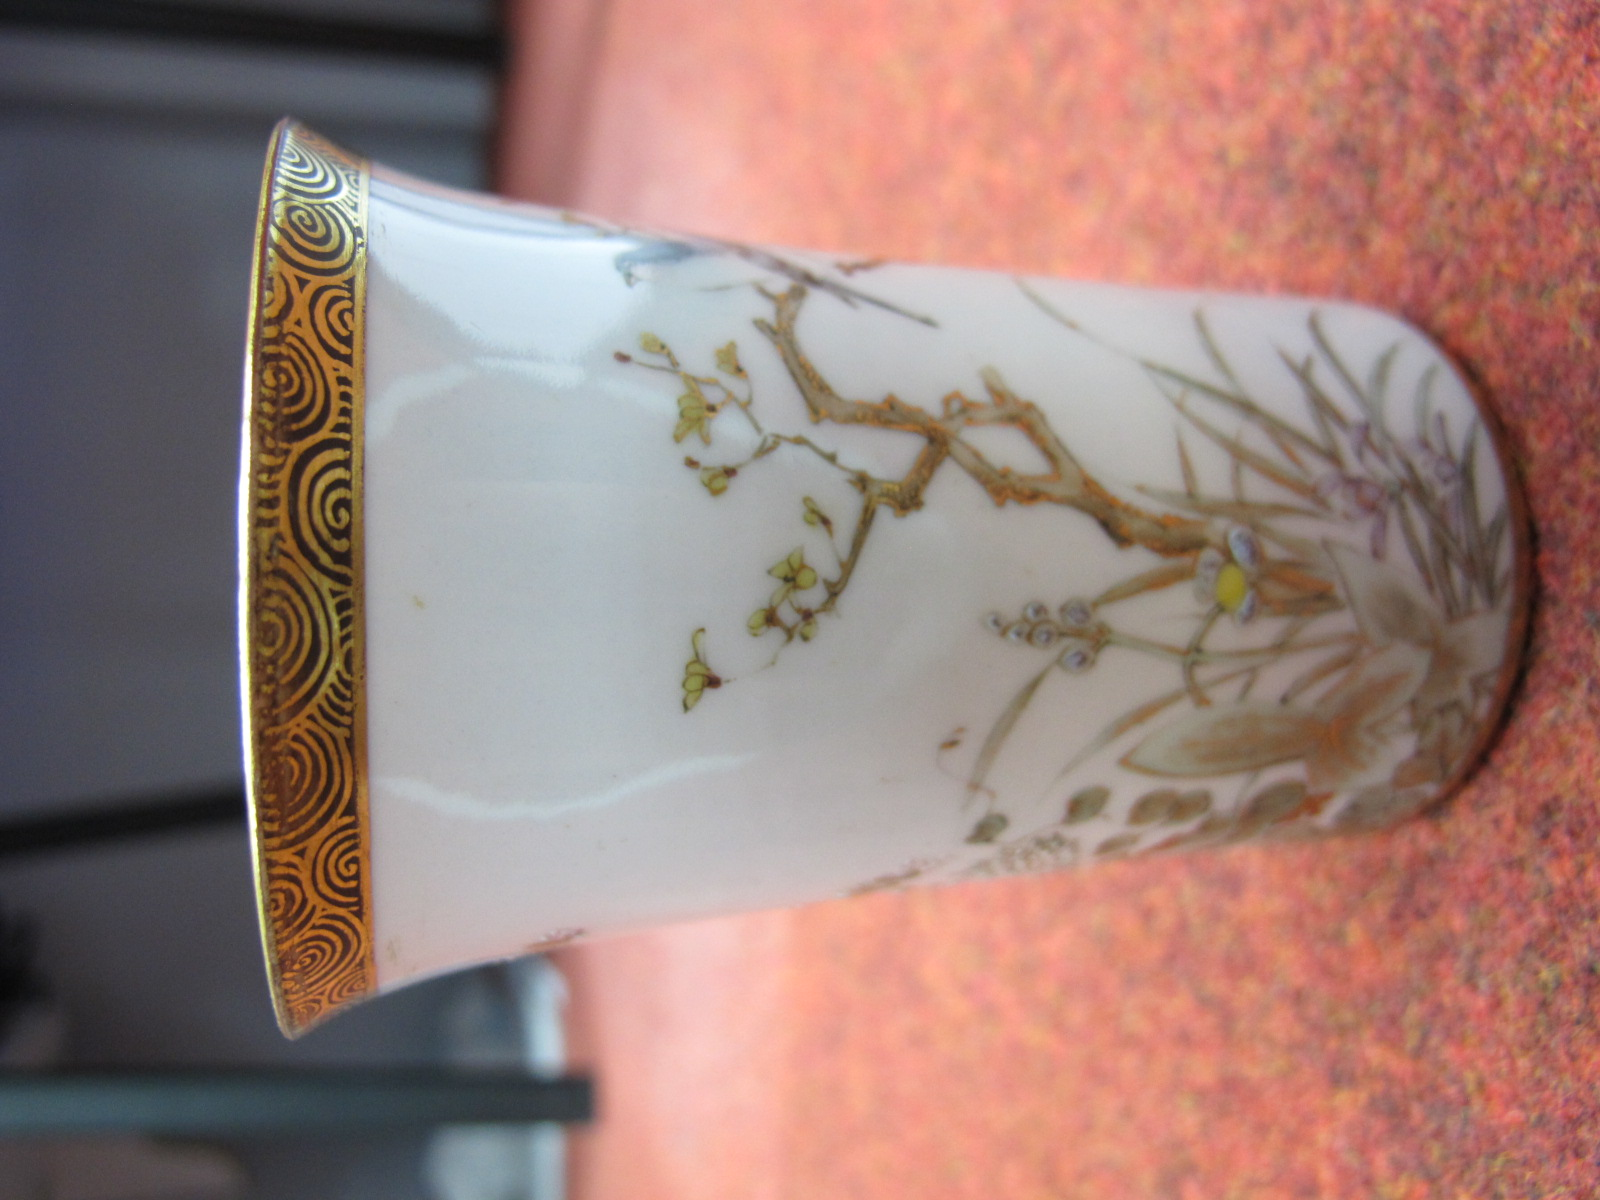 Lot 113 - Mabel Leigh Shorter Pottery Jug, Aztec pattern (damaged), Shelley vase with a red ground decorated